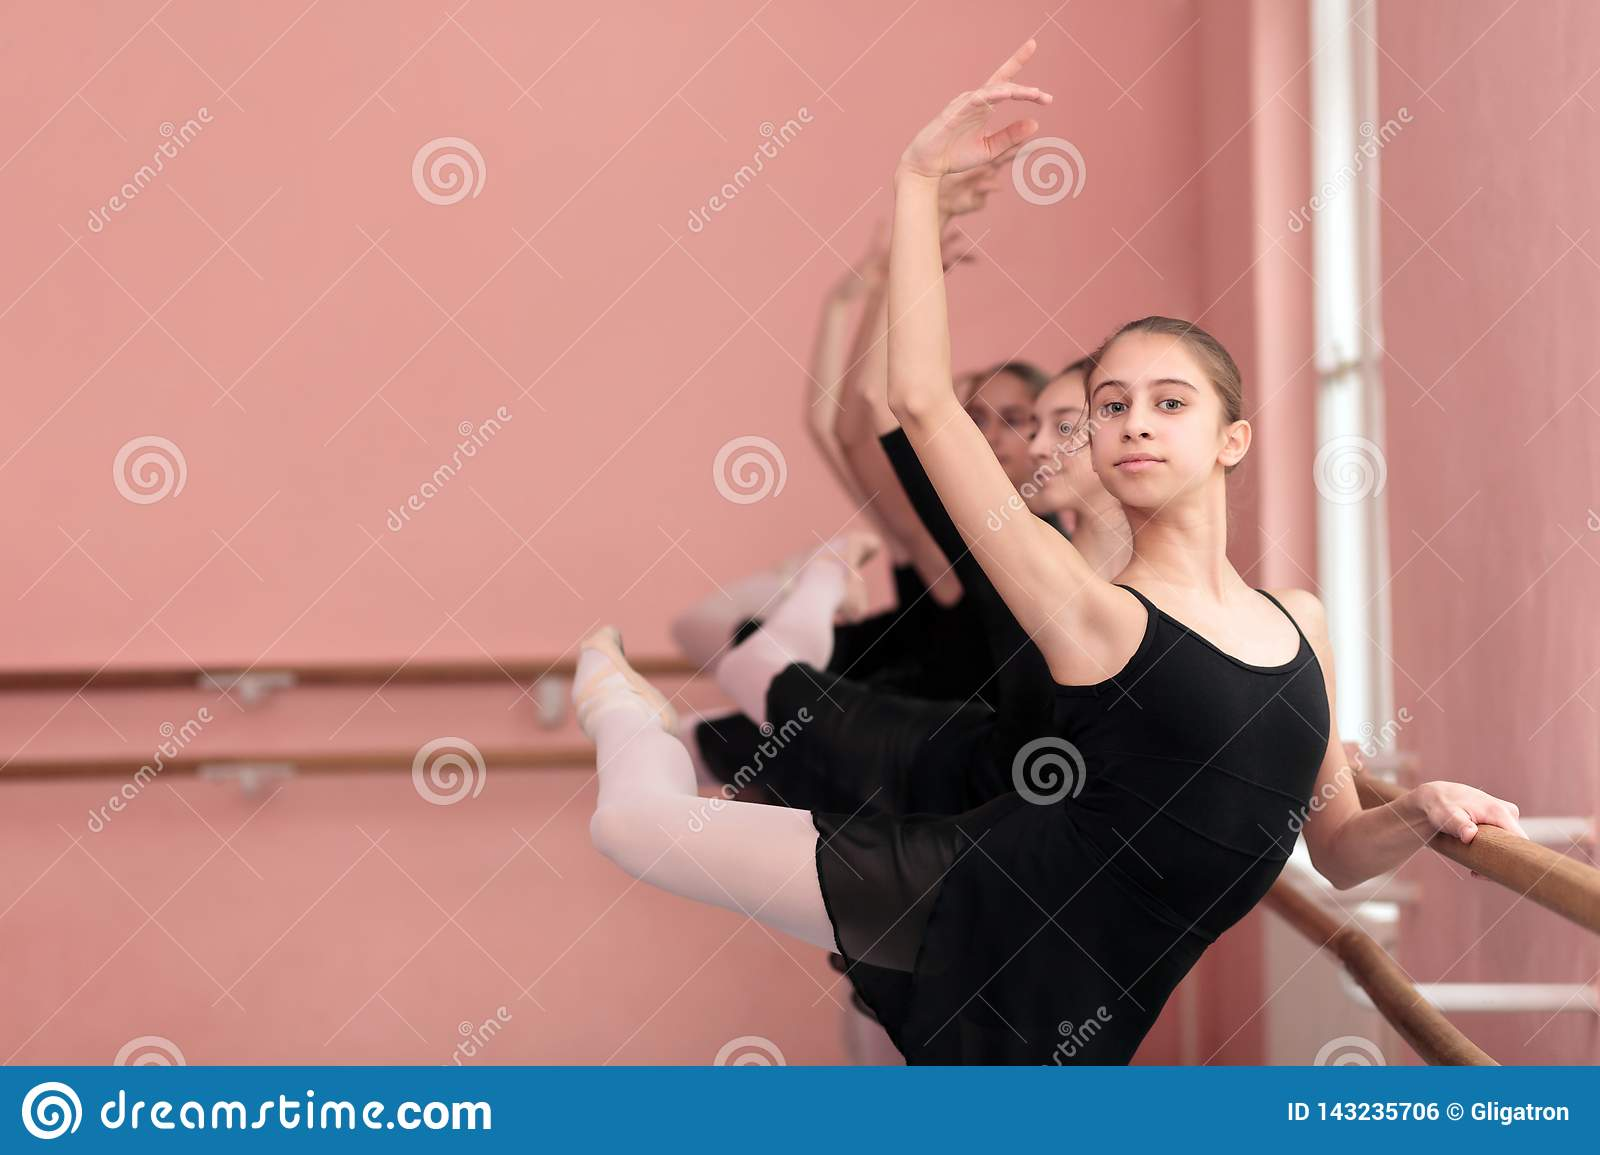 Small group of teenage girls practicing classical ballet